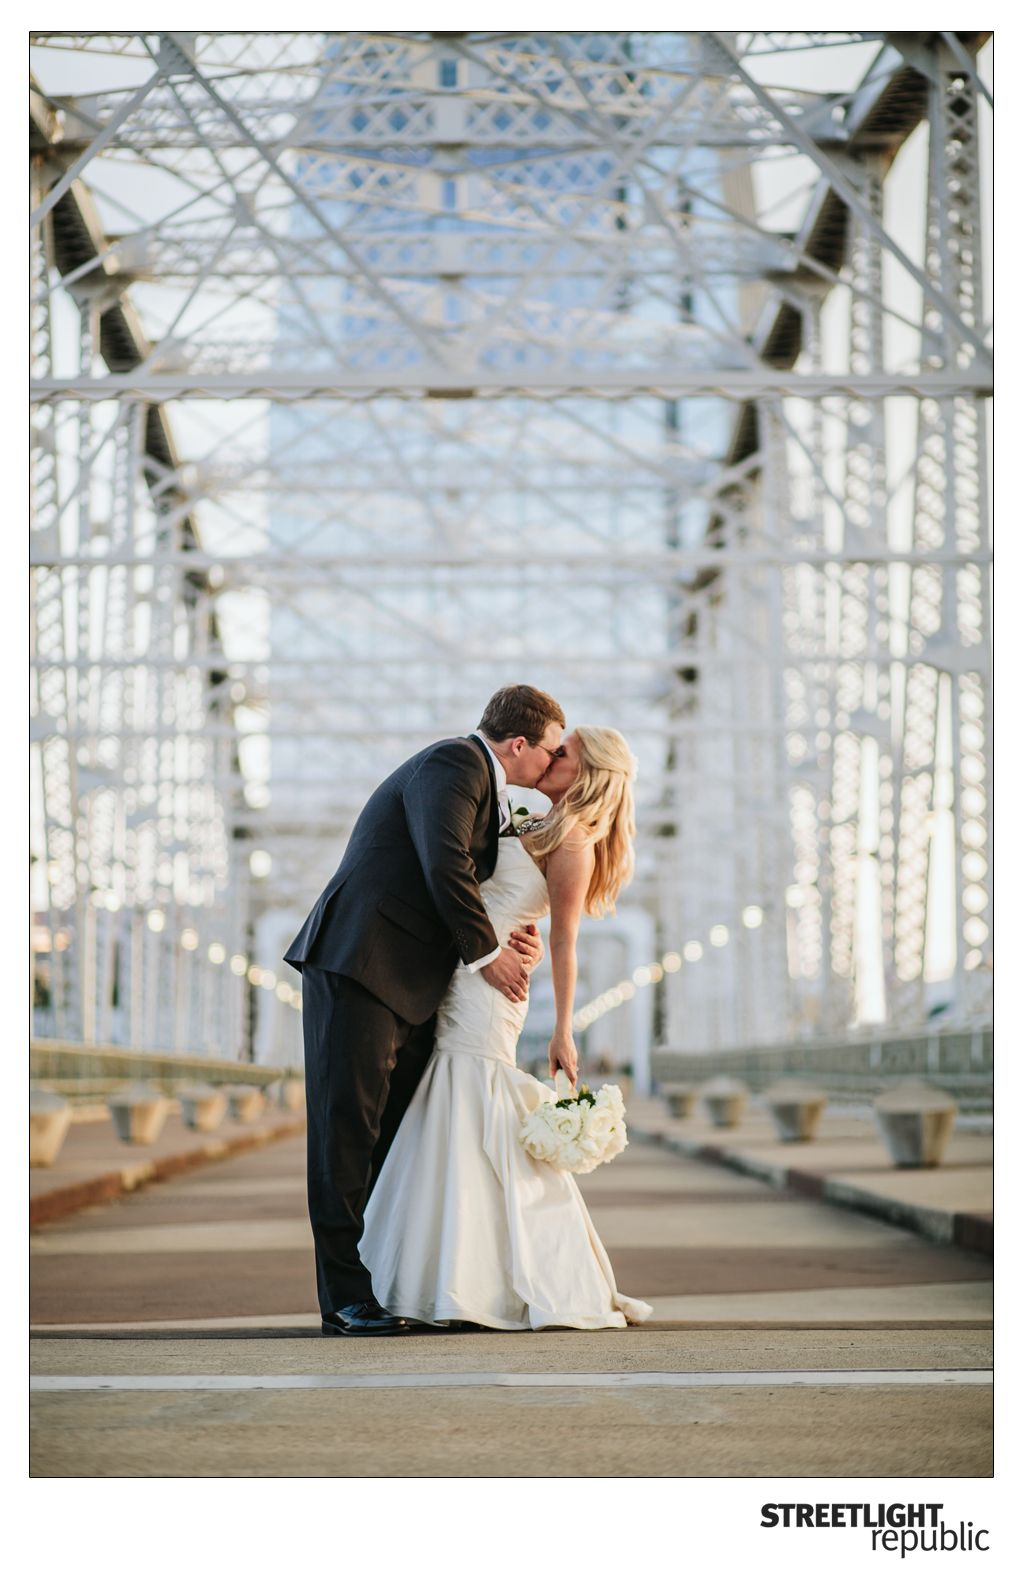 Downtown Nashville Tennessee Skyline Weddings Wedding Photographers